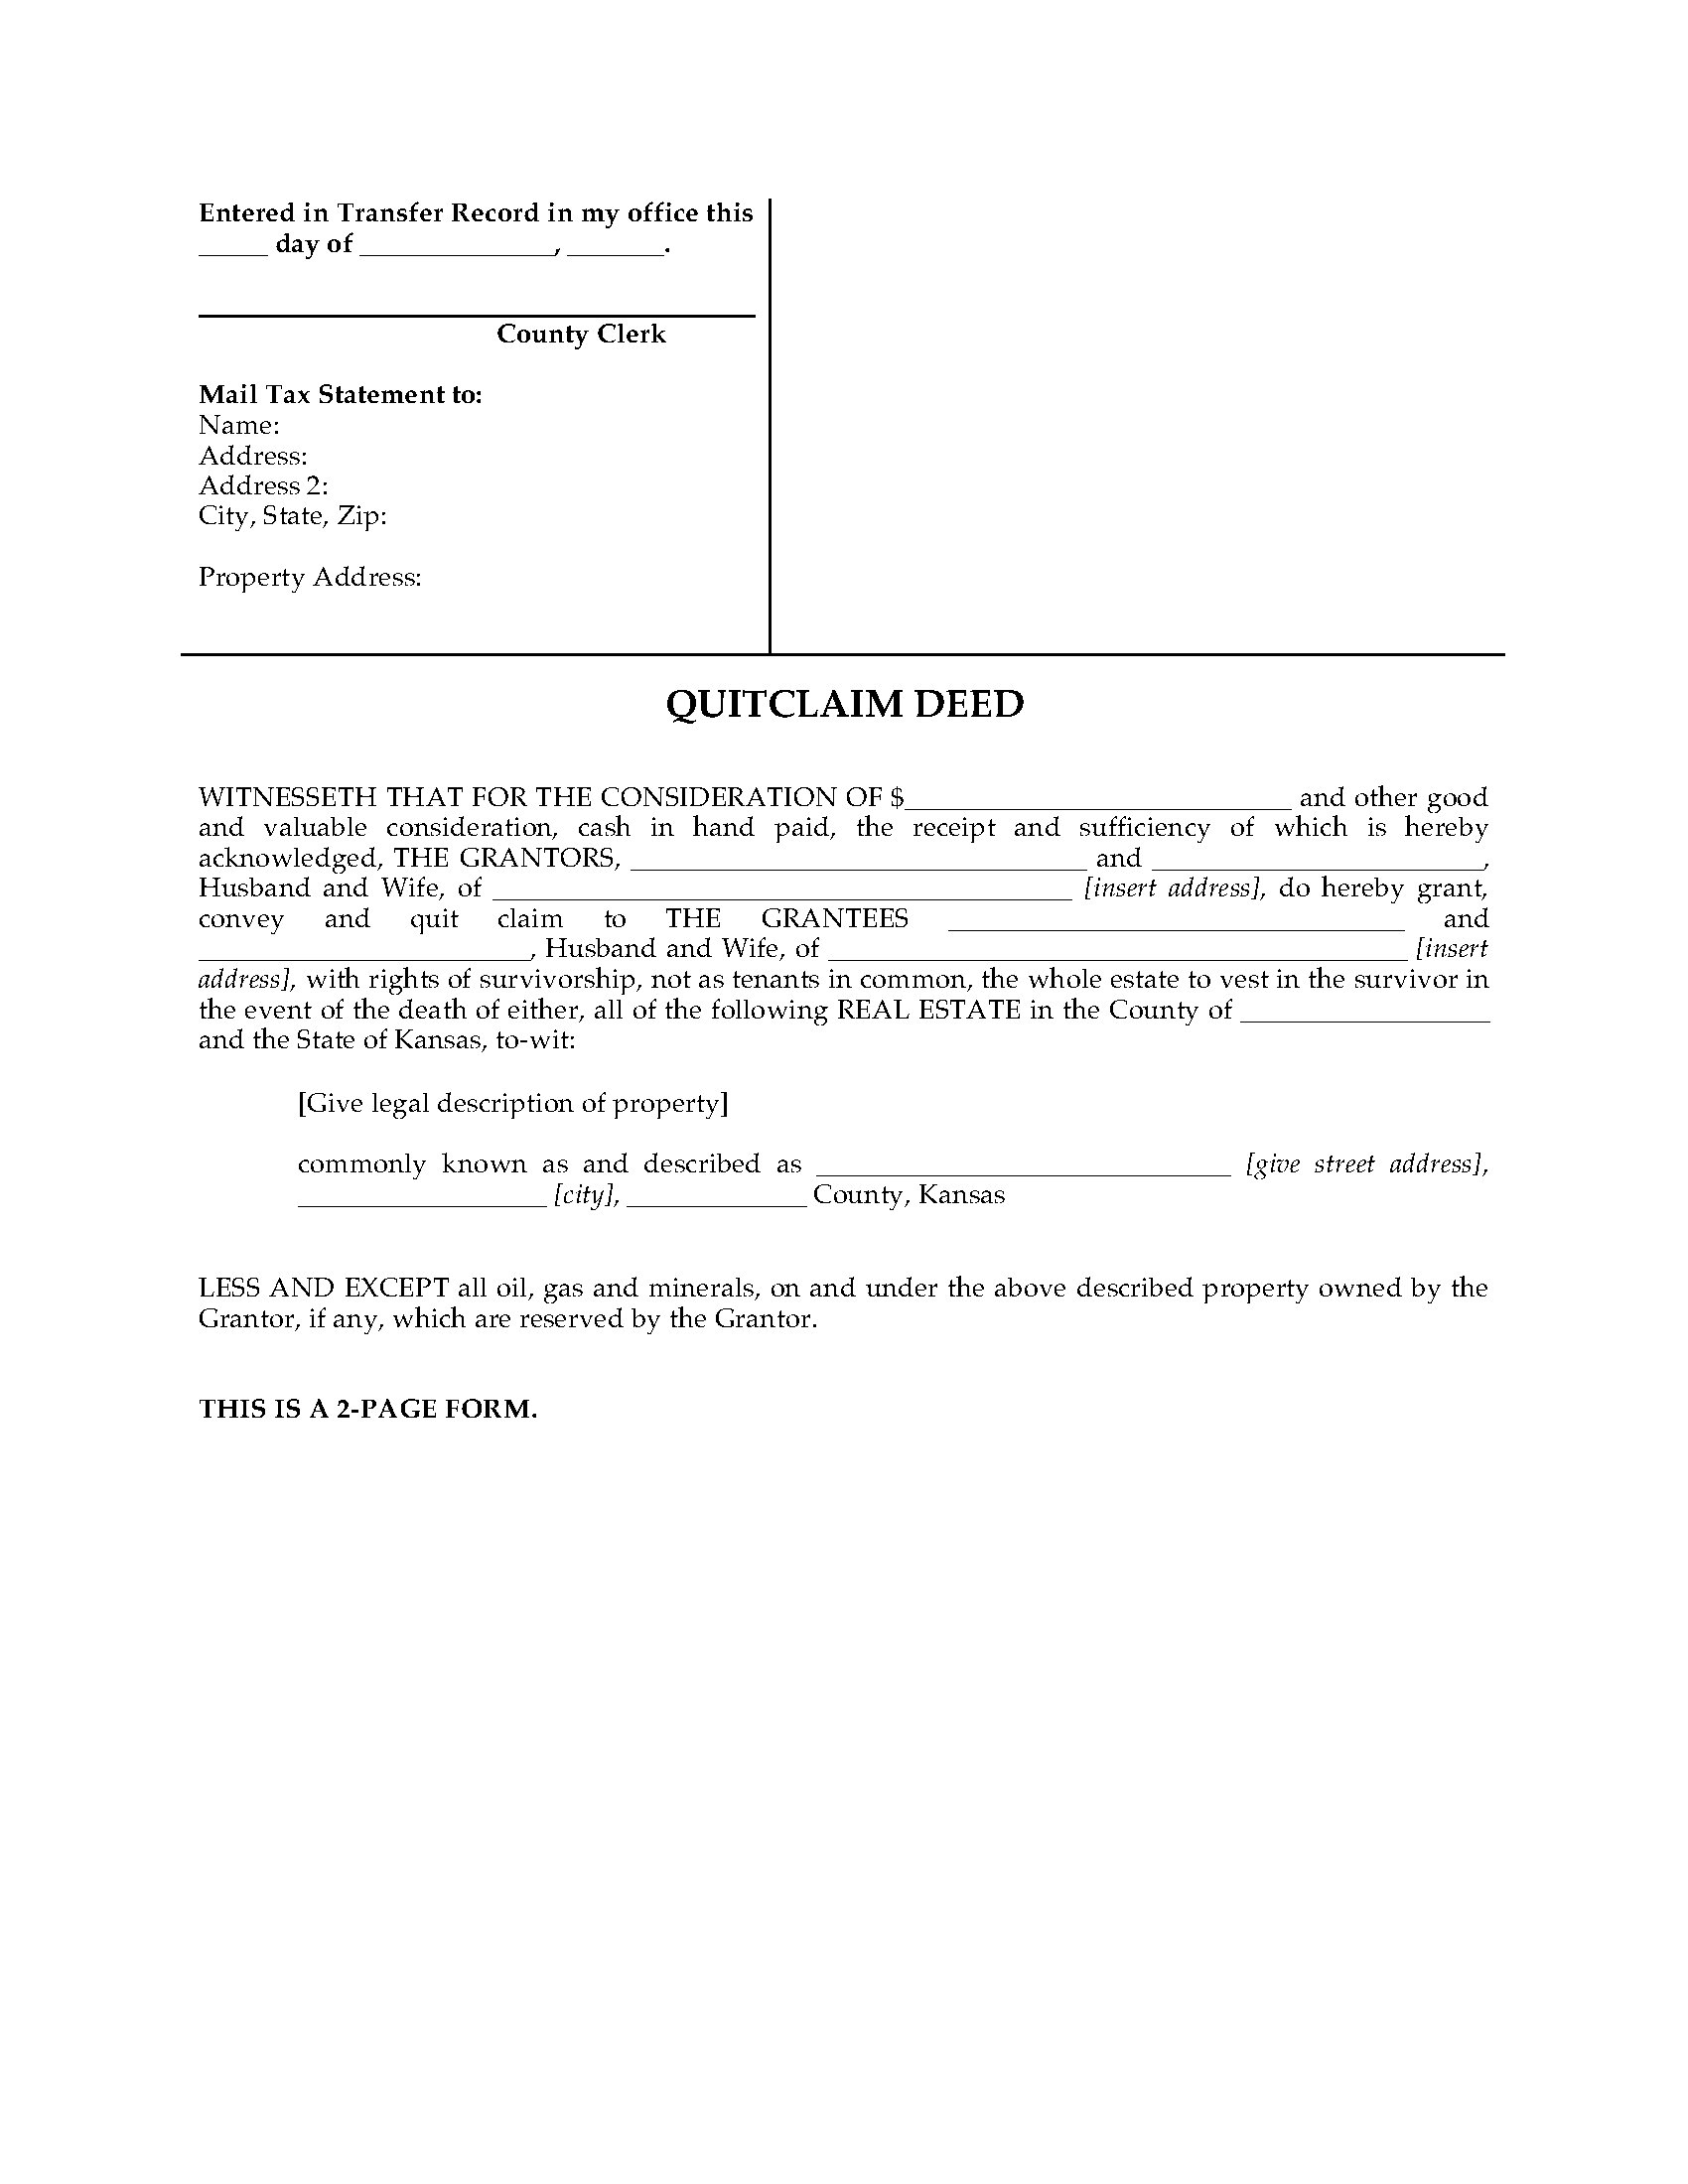 Kansas Quitclaim Deed For Joint Ownership Legal Forms And Business - Kansas legal forms